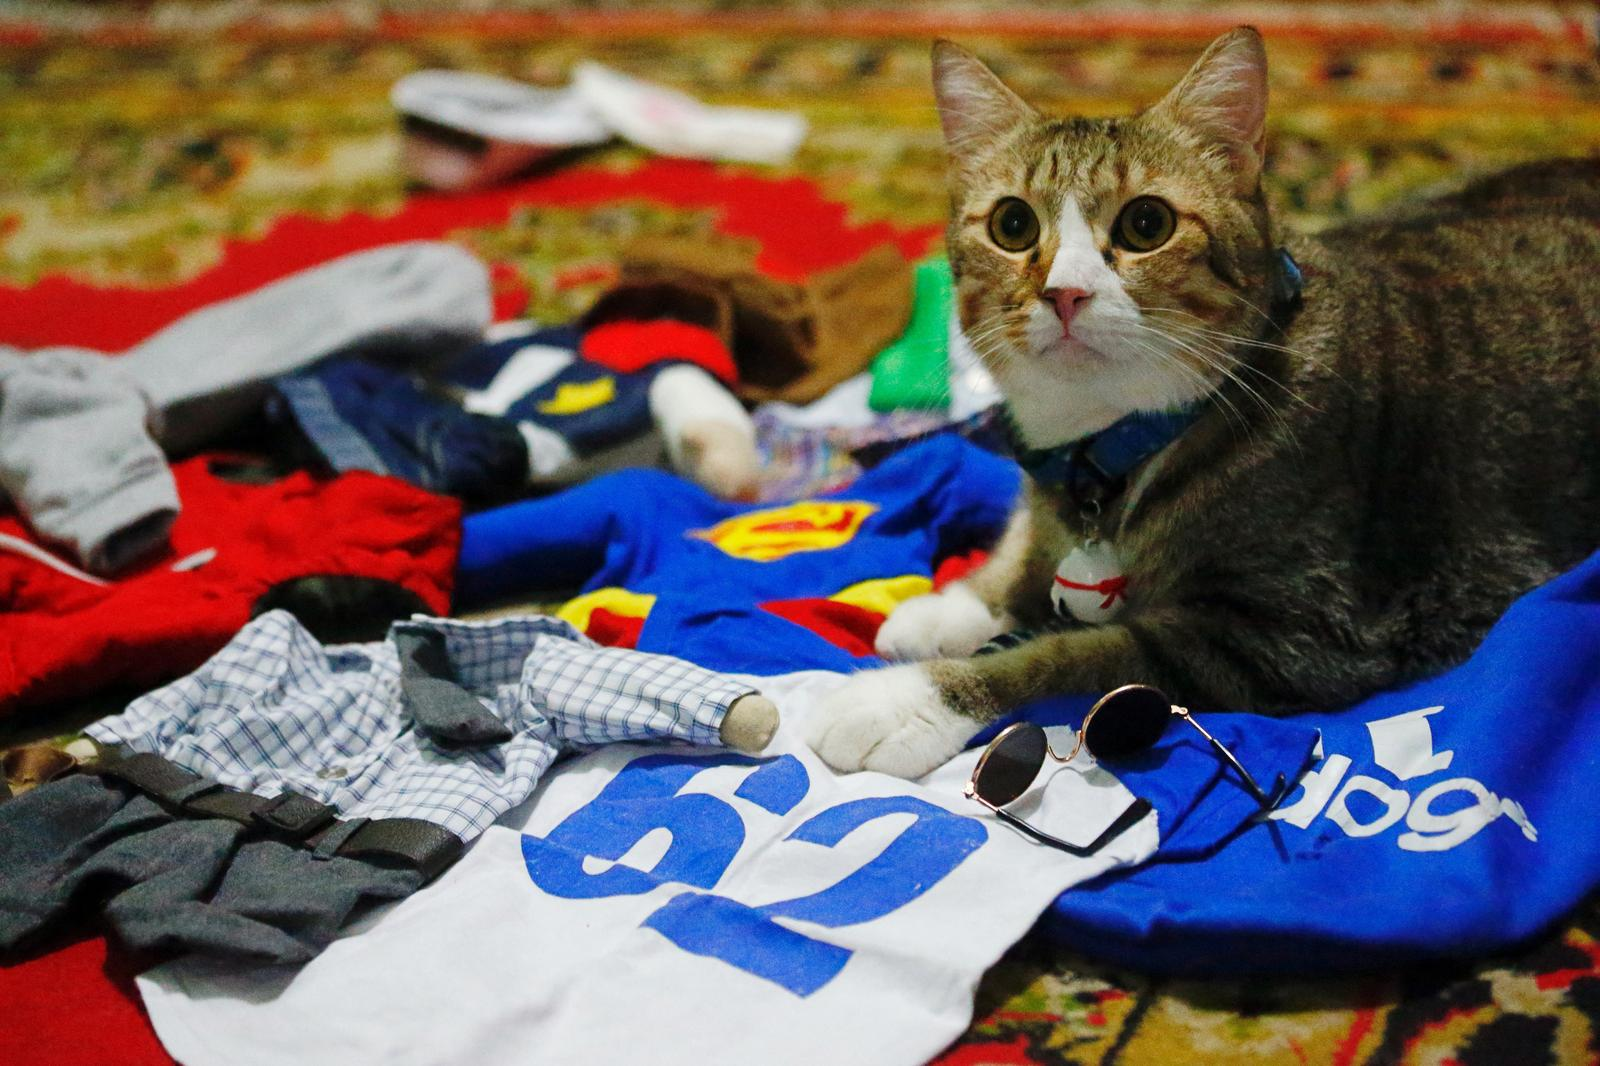 A cat sits among its cosplay costumes in Jakarta, Indonesia, November 29, 2020. Picture taken November 29, 2020. Photo: Reuters